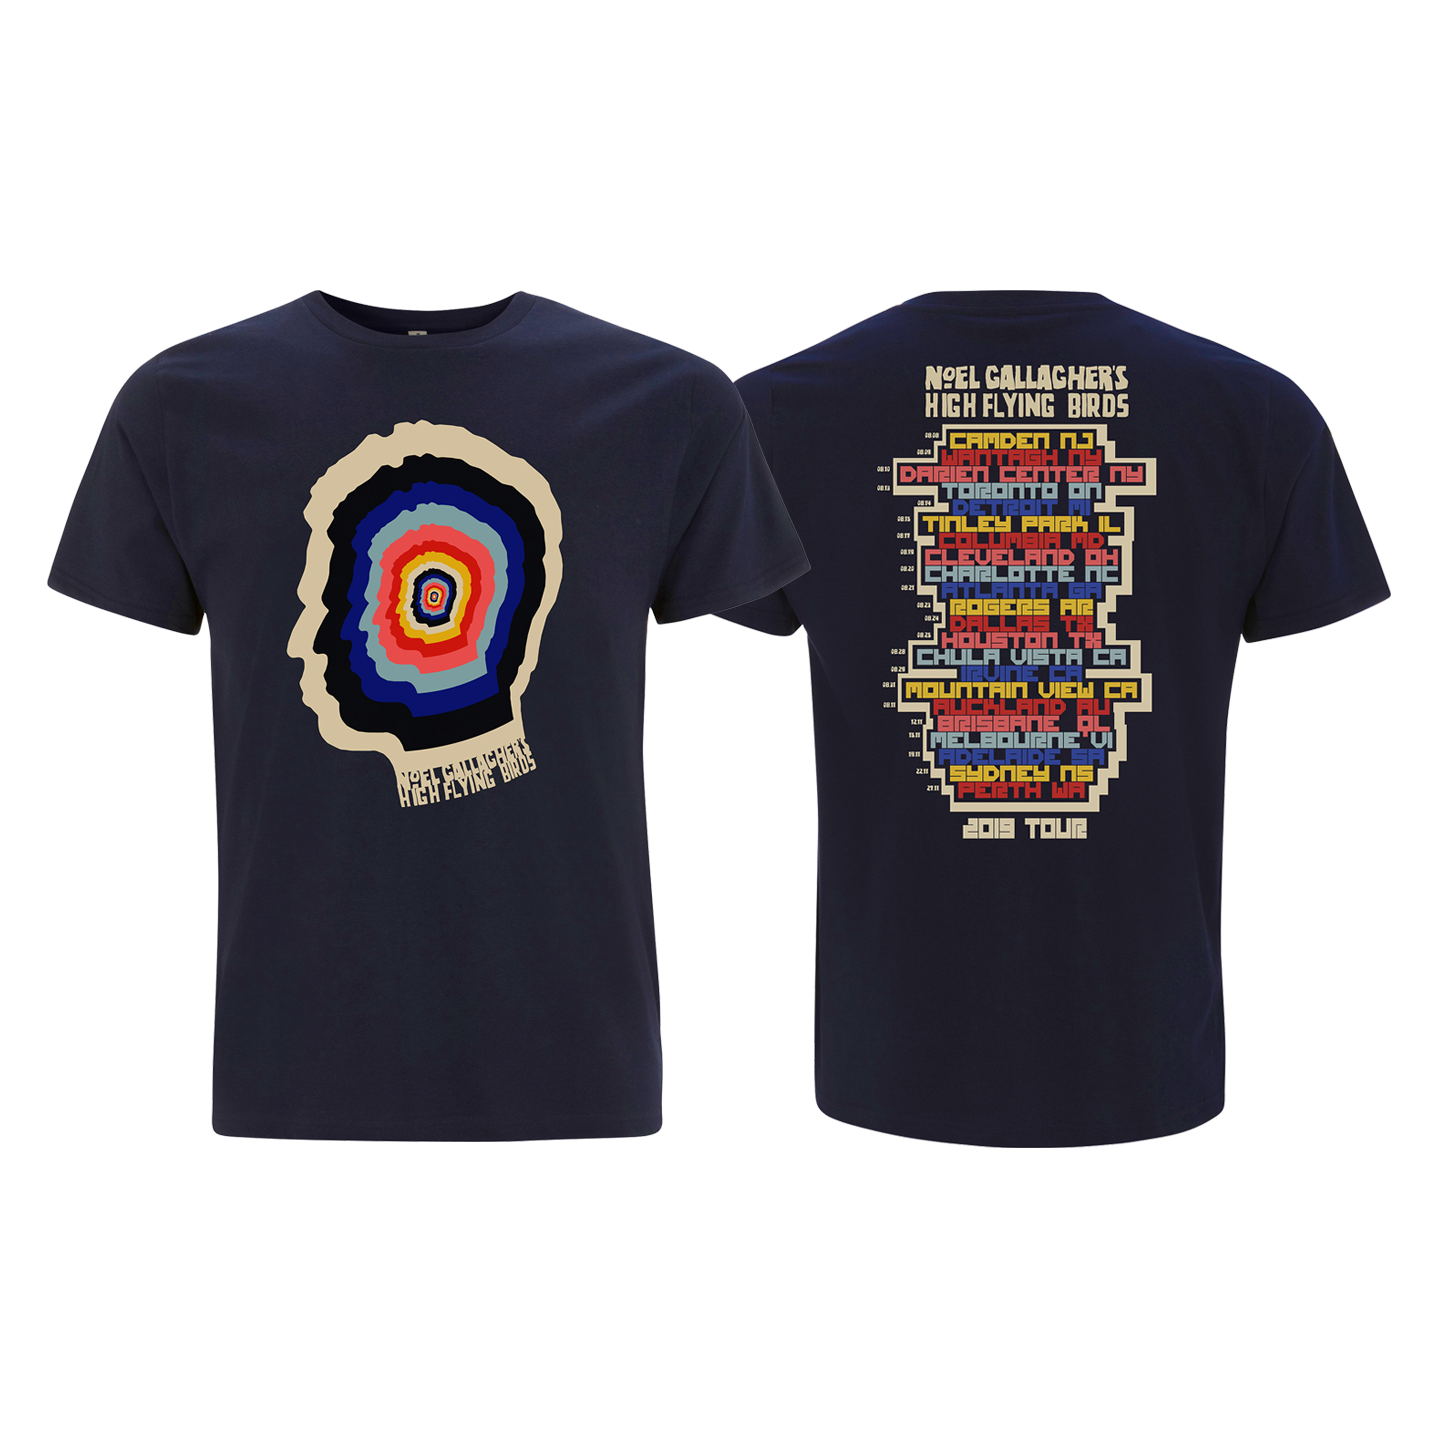 Buy Online Noel Gallagher's High Flying Birds Official Store - Kaleidoscope 2019 Tour T-Shirt